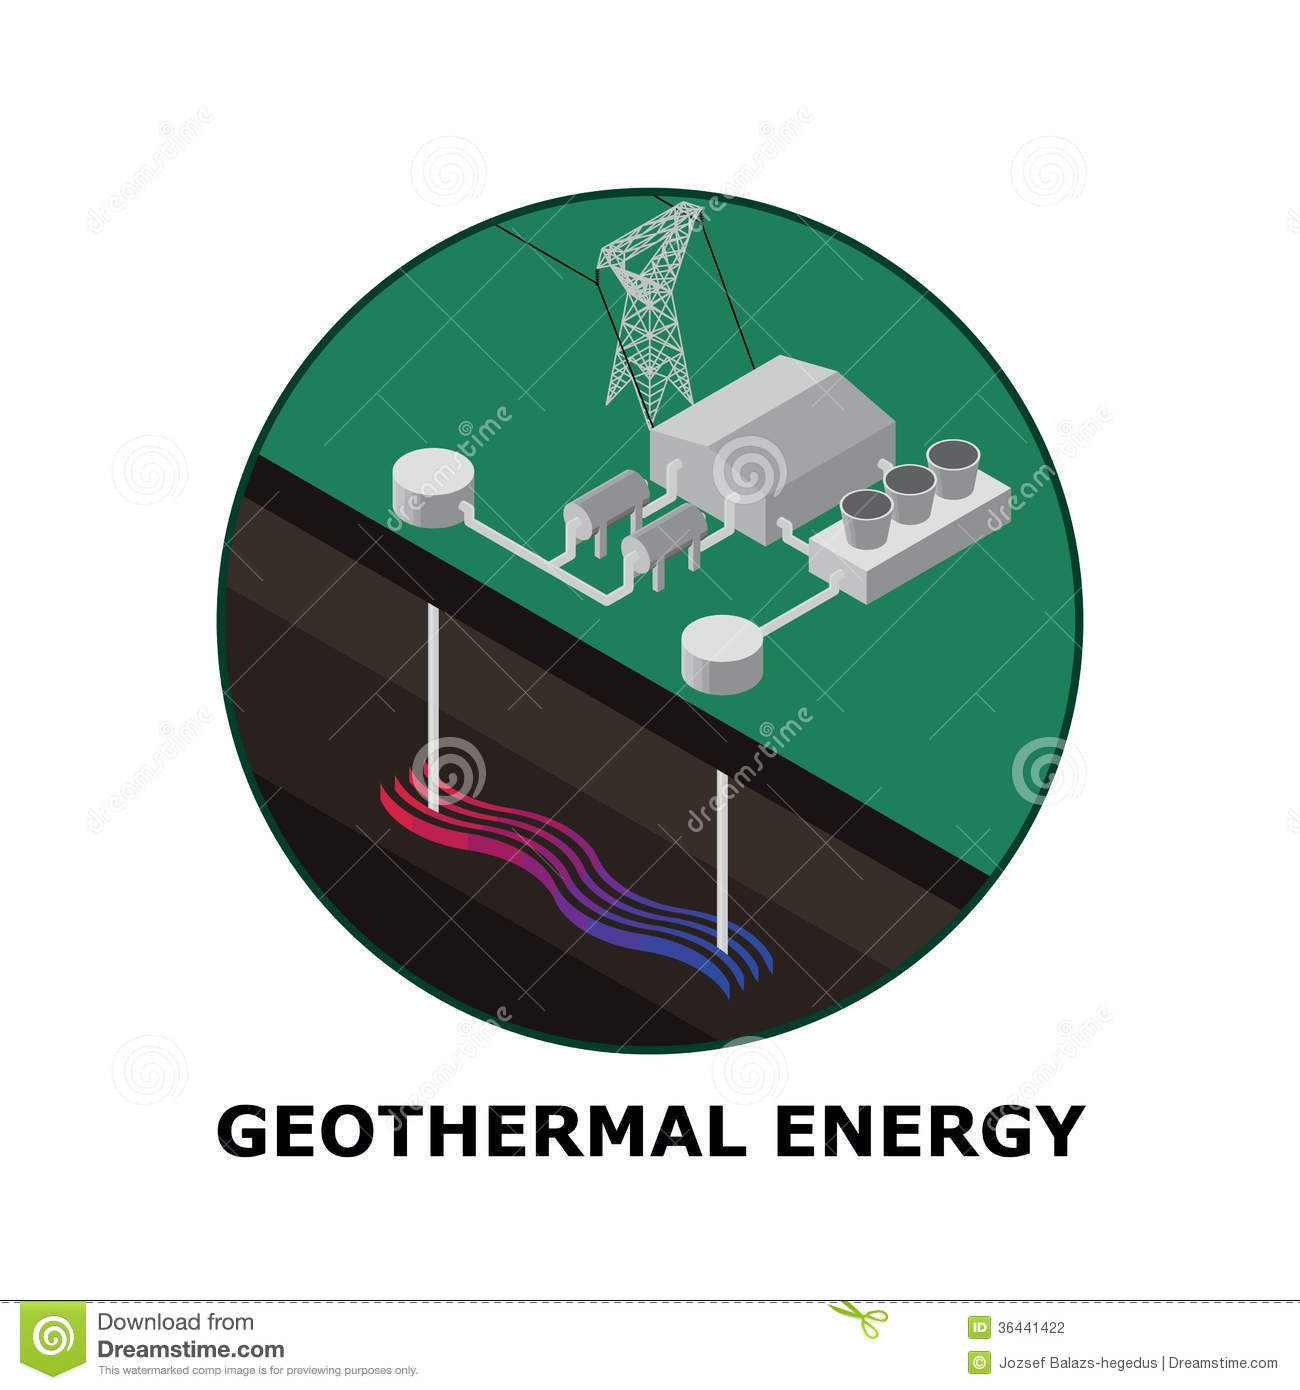 Geothermal energy renewable energy sources part stock vector geothermal energy renewable energy sources part pooptronica